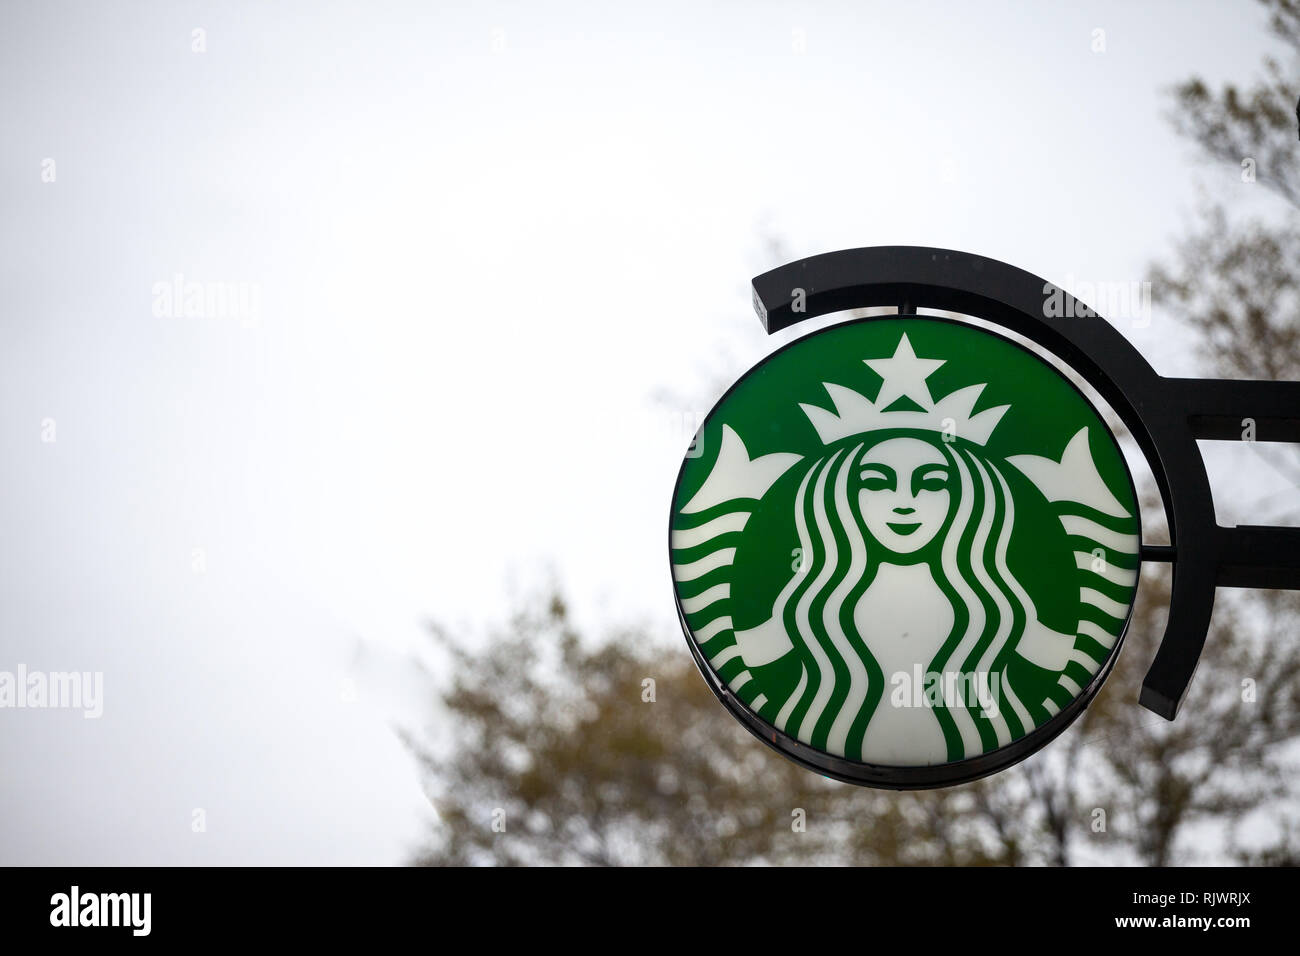 MONTREAL, CANADA - NOVEMBER 6, 2018: Starbucks logo in front of a Starbucks coffeehouse in the city center of Montreal, Quebec. Montreal is a brand of - Stock Image